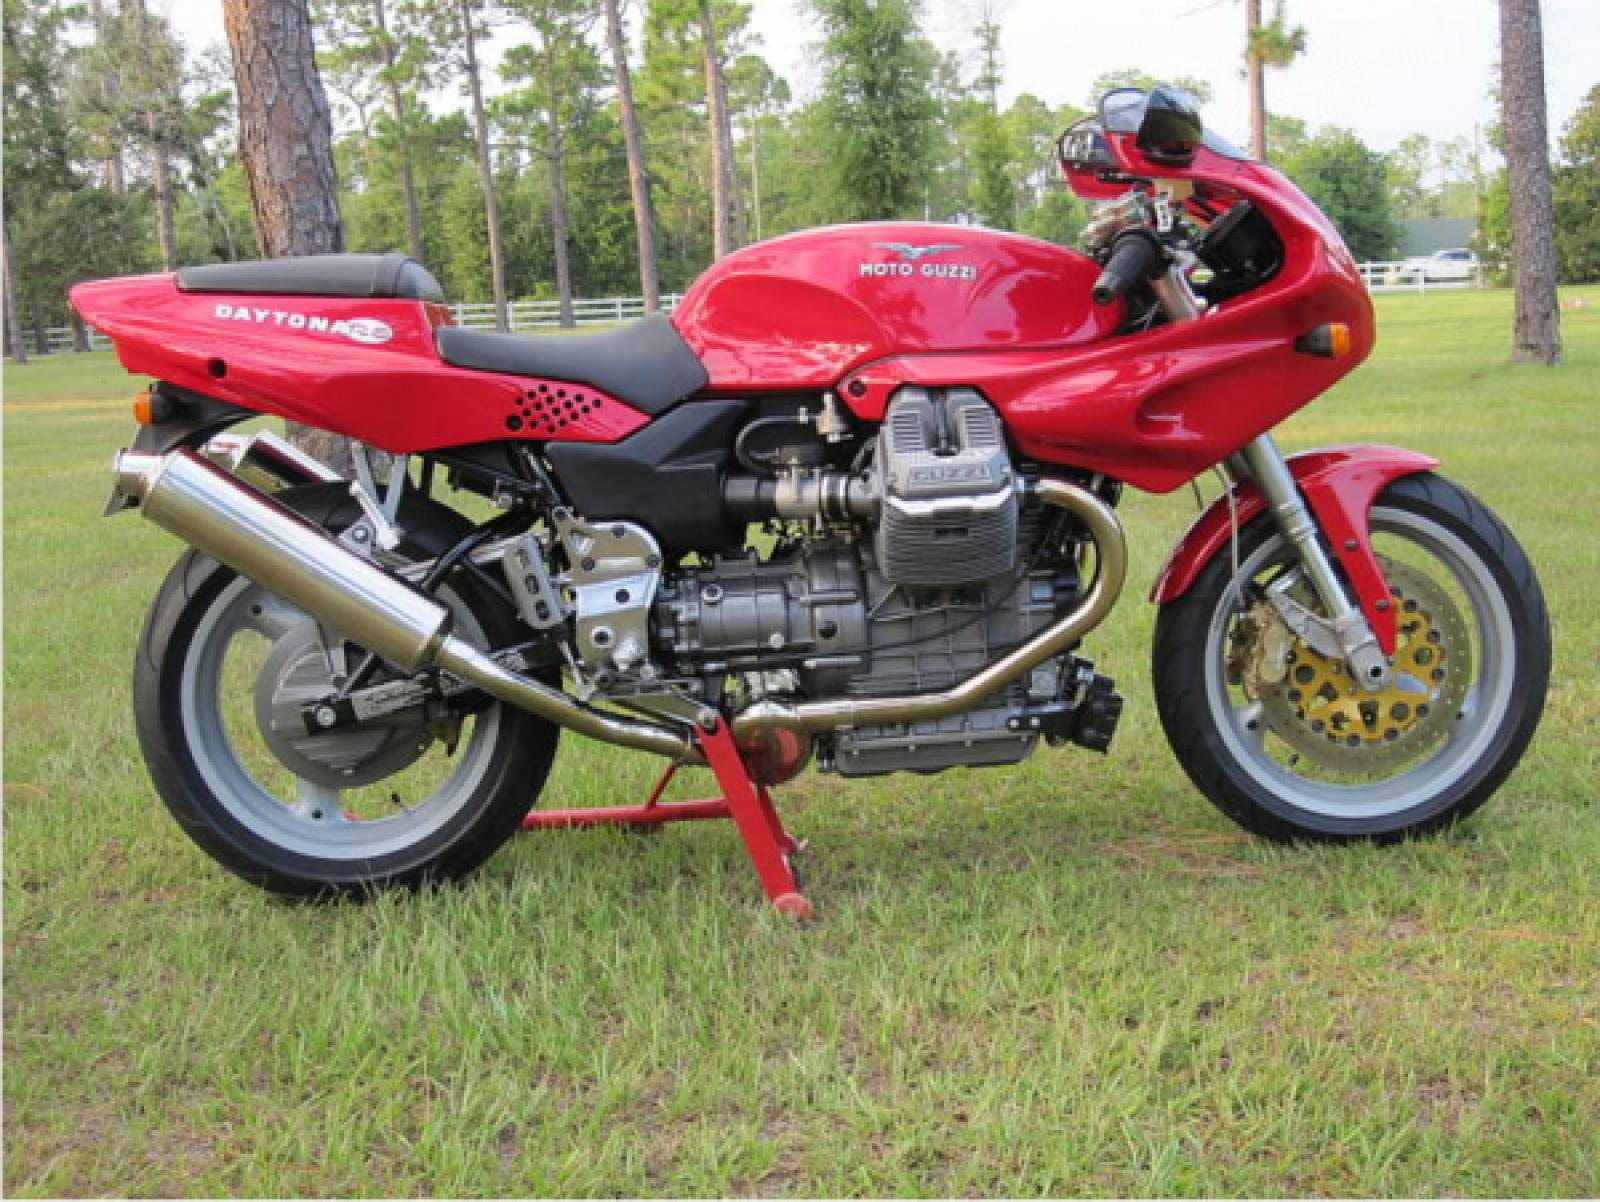 Moto Guzzi 1000 Daytona Injection images #108581